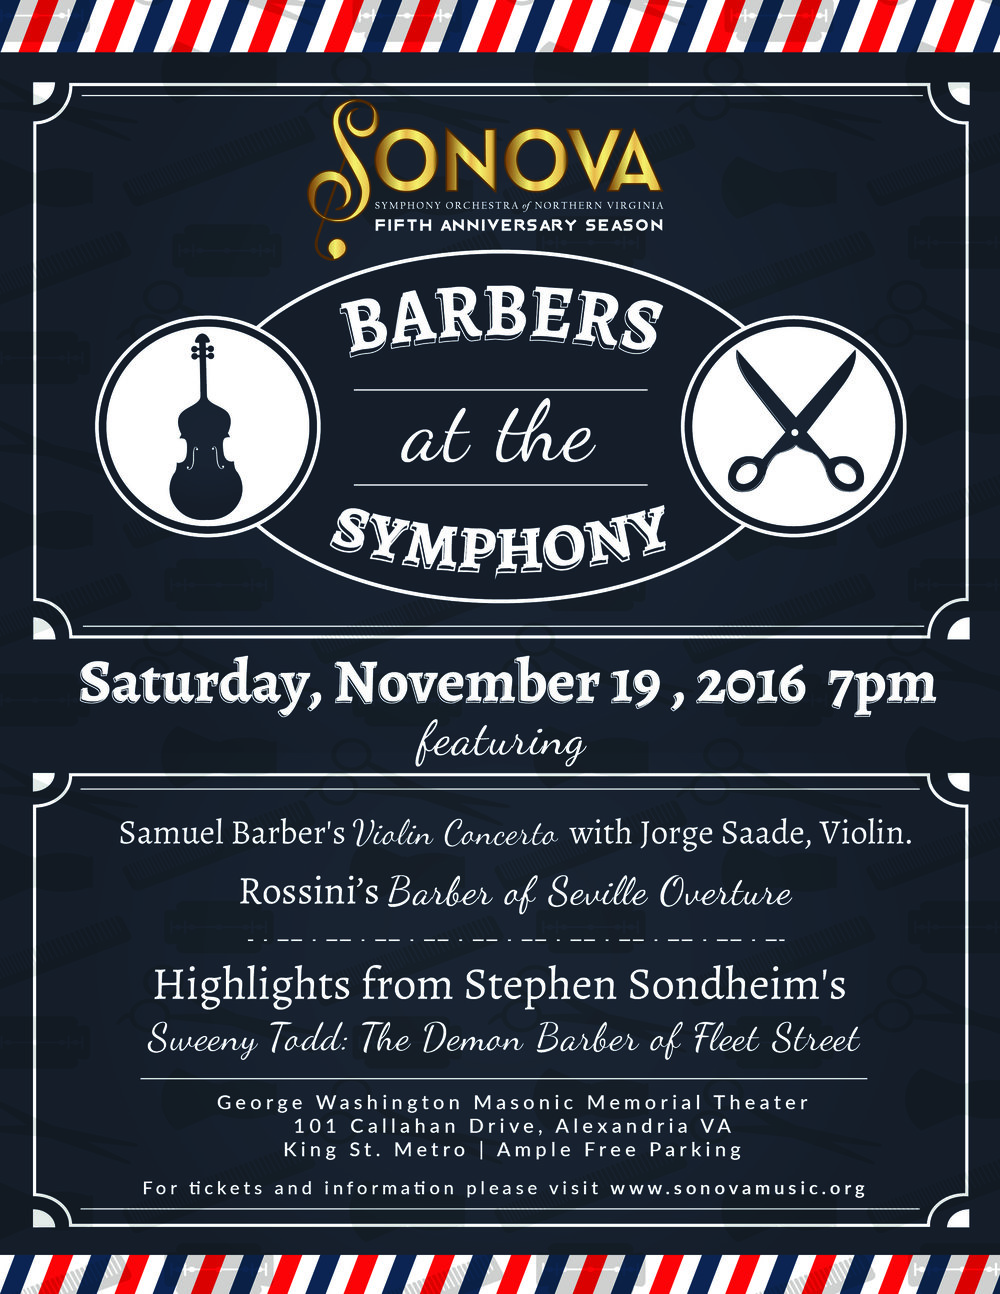 Barbers at the Symphony Flyer.jpg